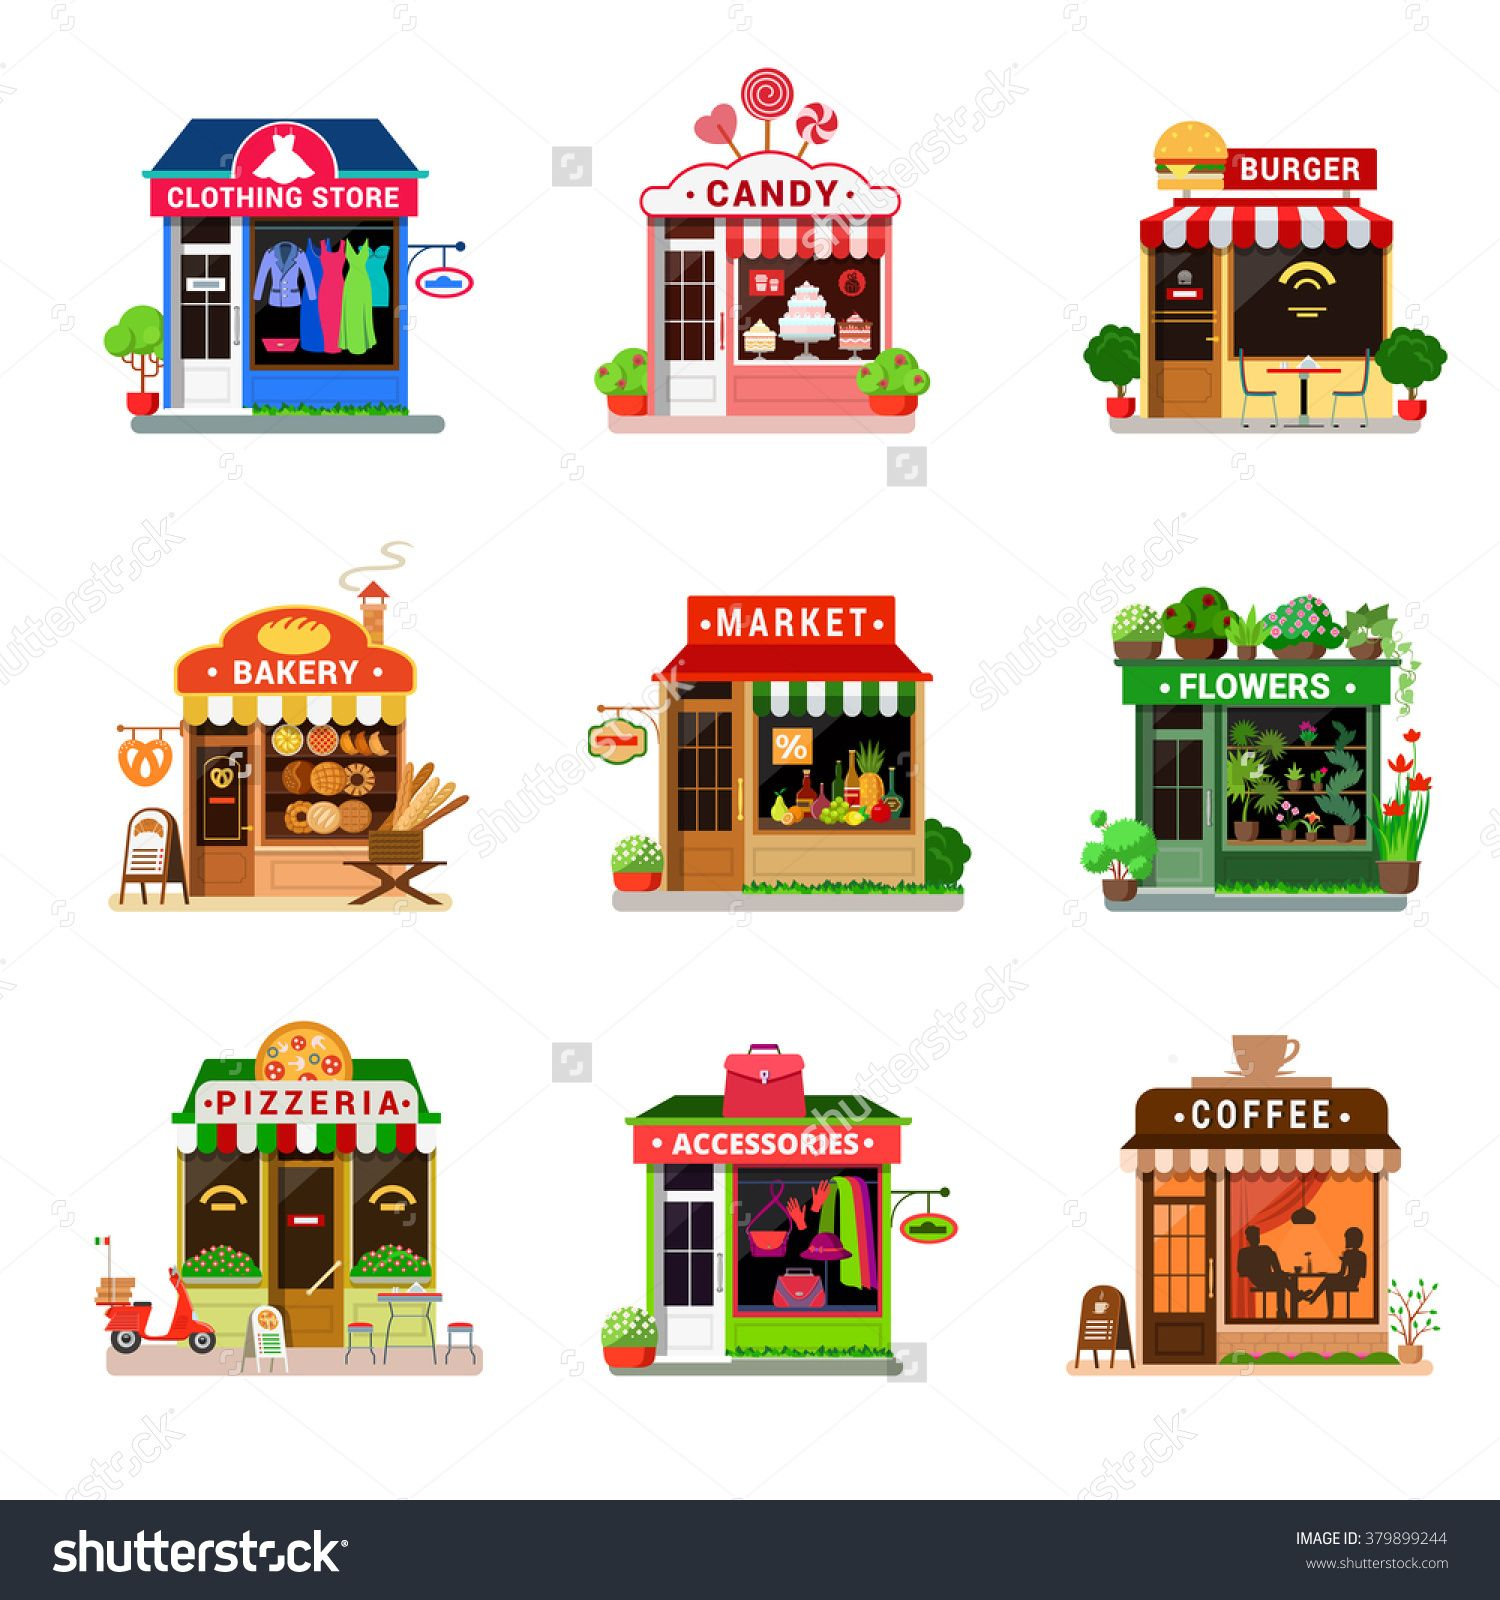 Grocery clipart cafe building. Flat style set tiny